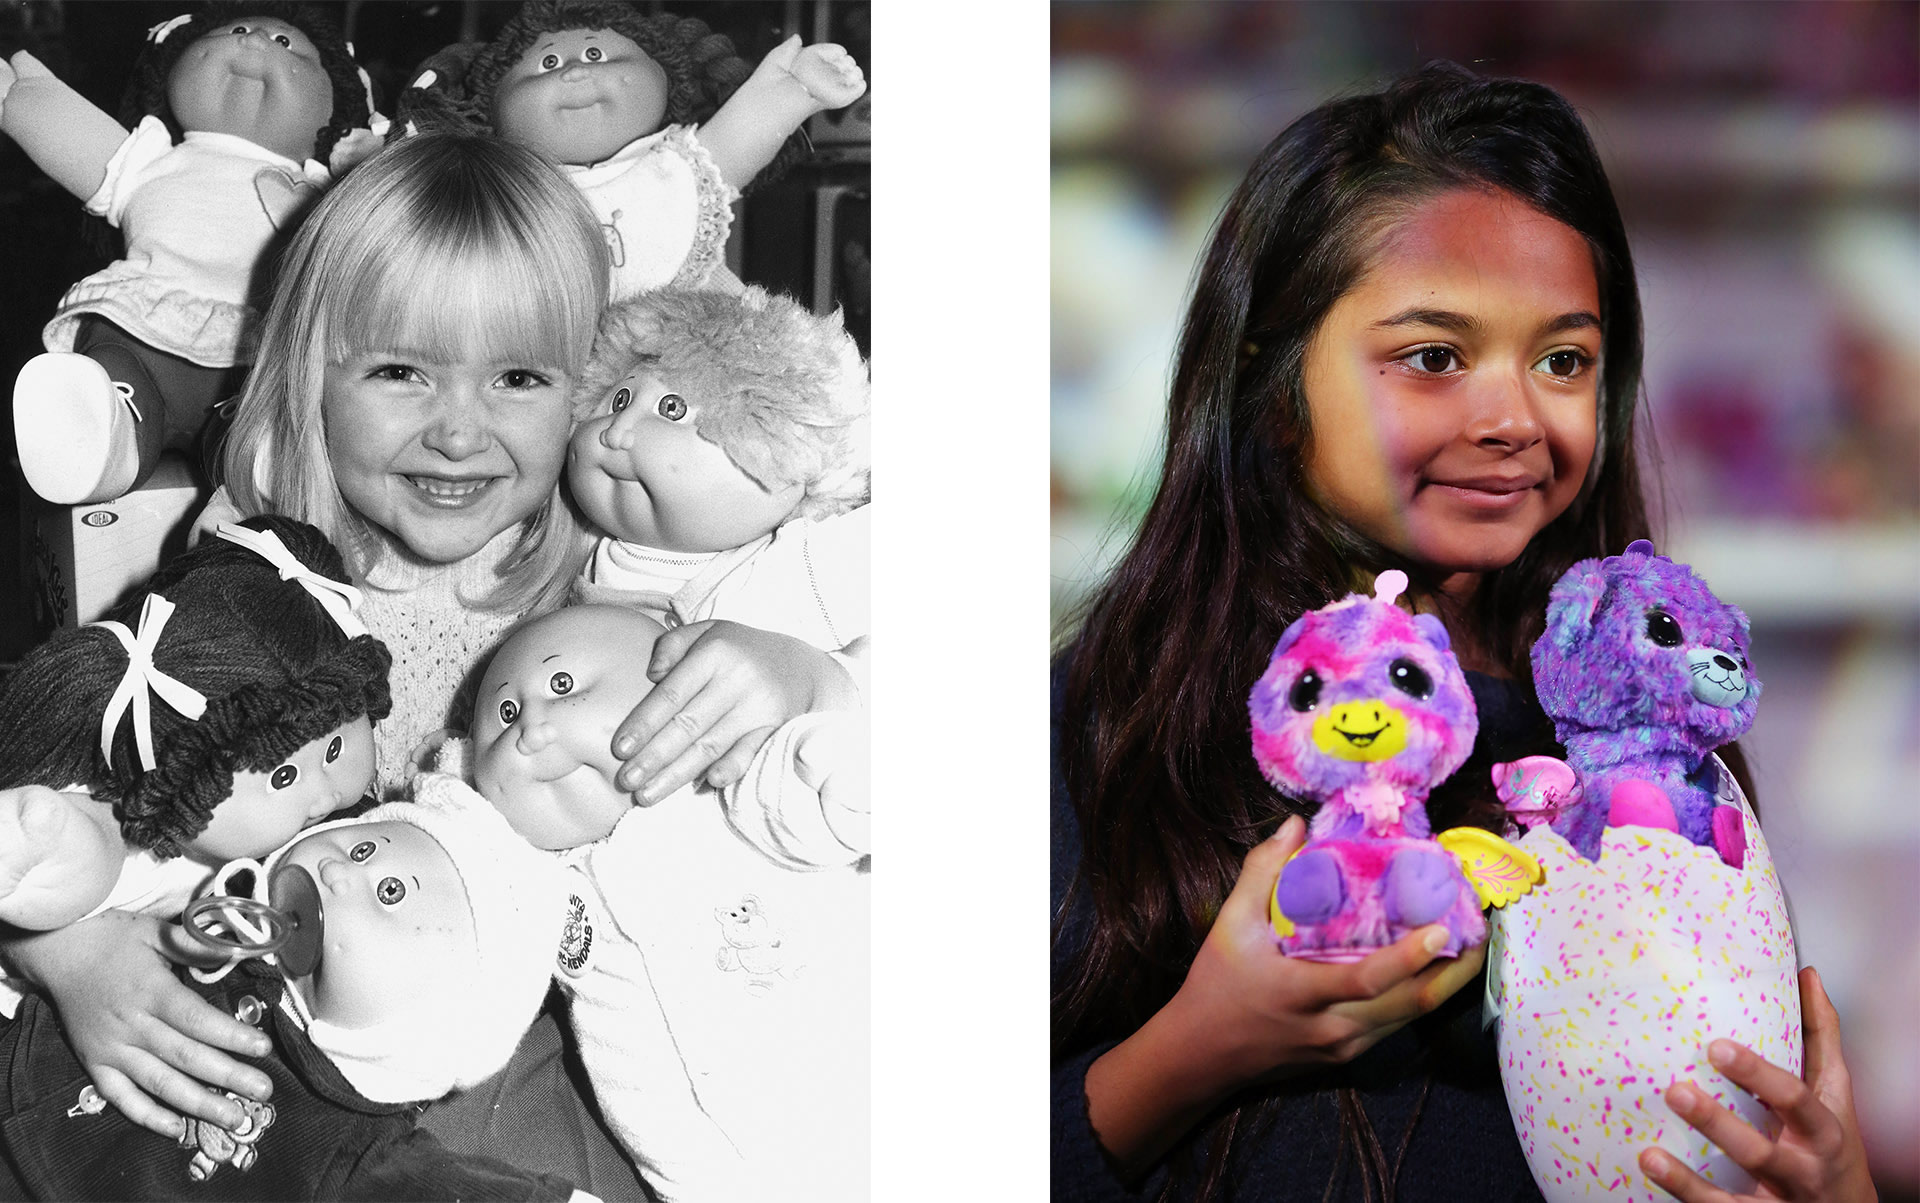 Cabbage Patch Kids (Credit: SSPL/Getty Images) and Hatchimals (Credit: Dan Kitwood/Getty Images)